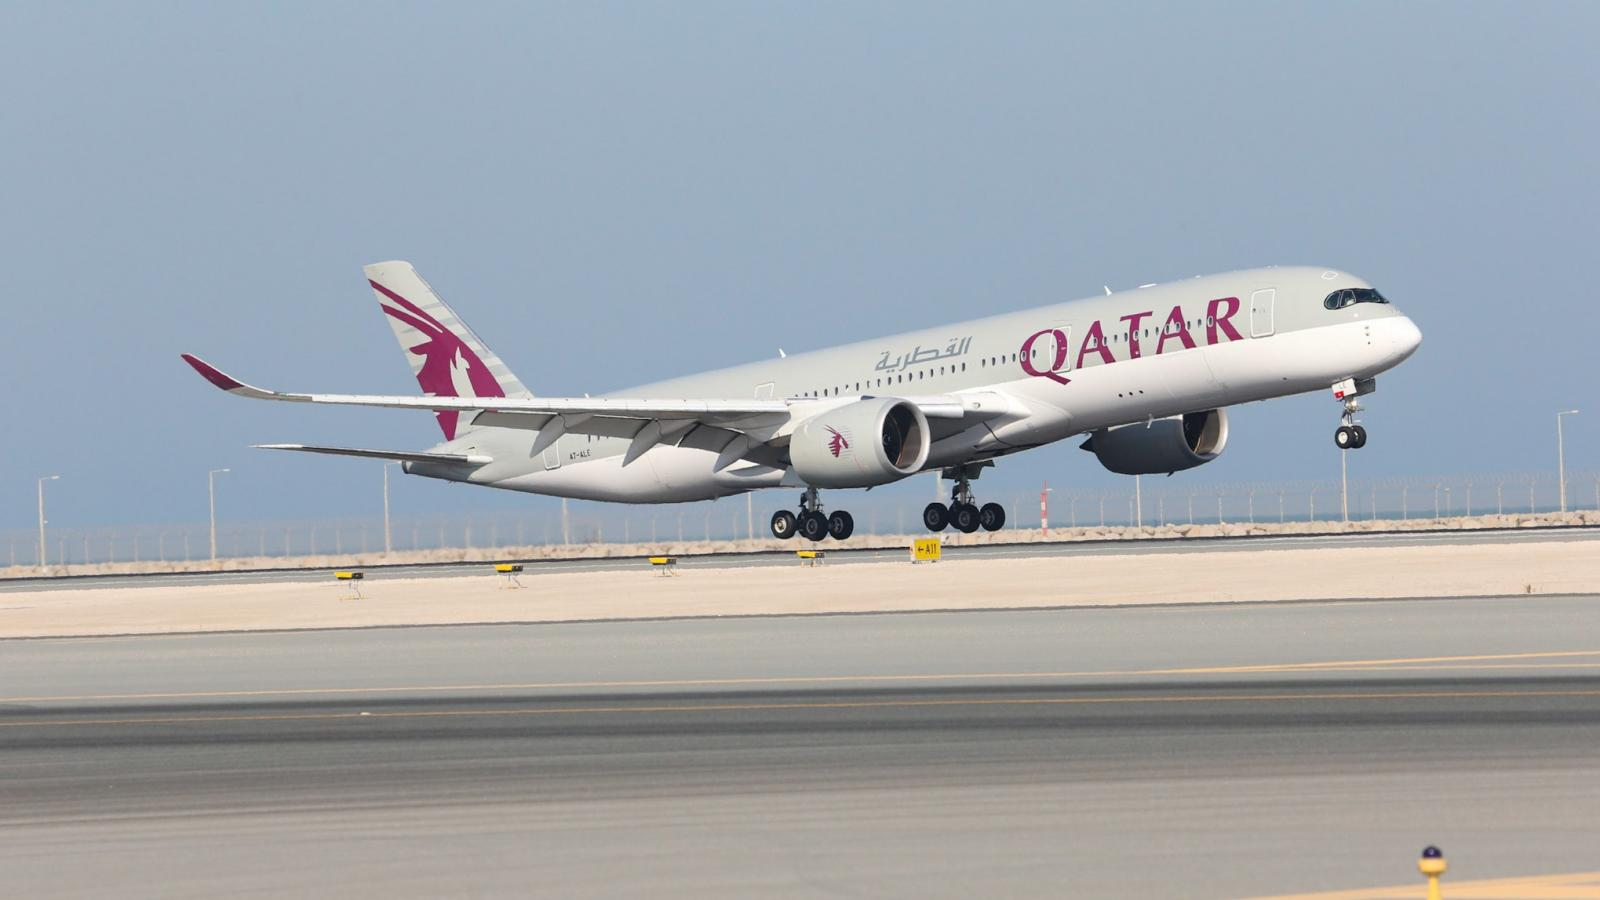 Largest batch containing more than 530,000 COVID-19 vaccines arrives in Qatar